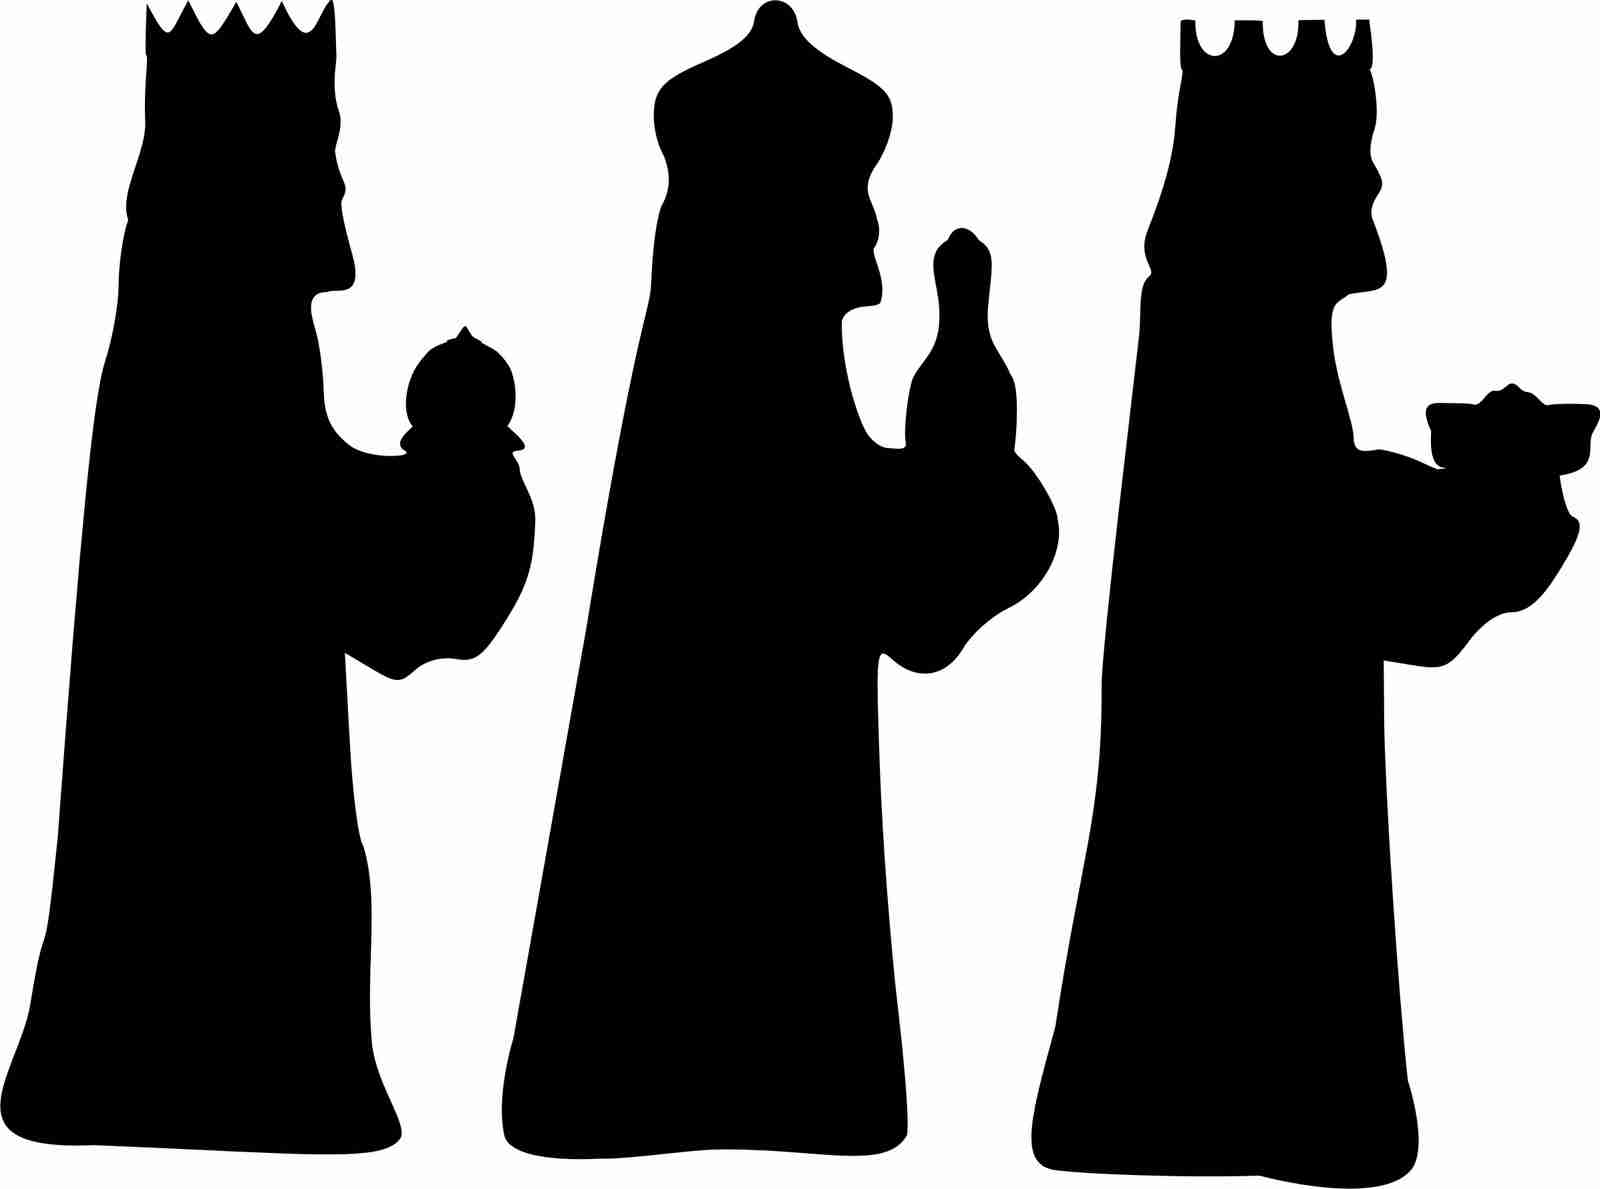 Wise Men Silhouette